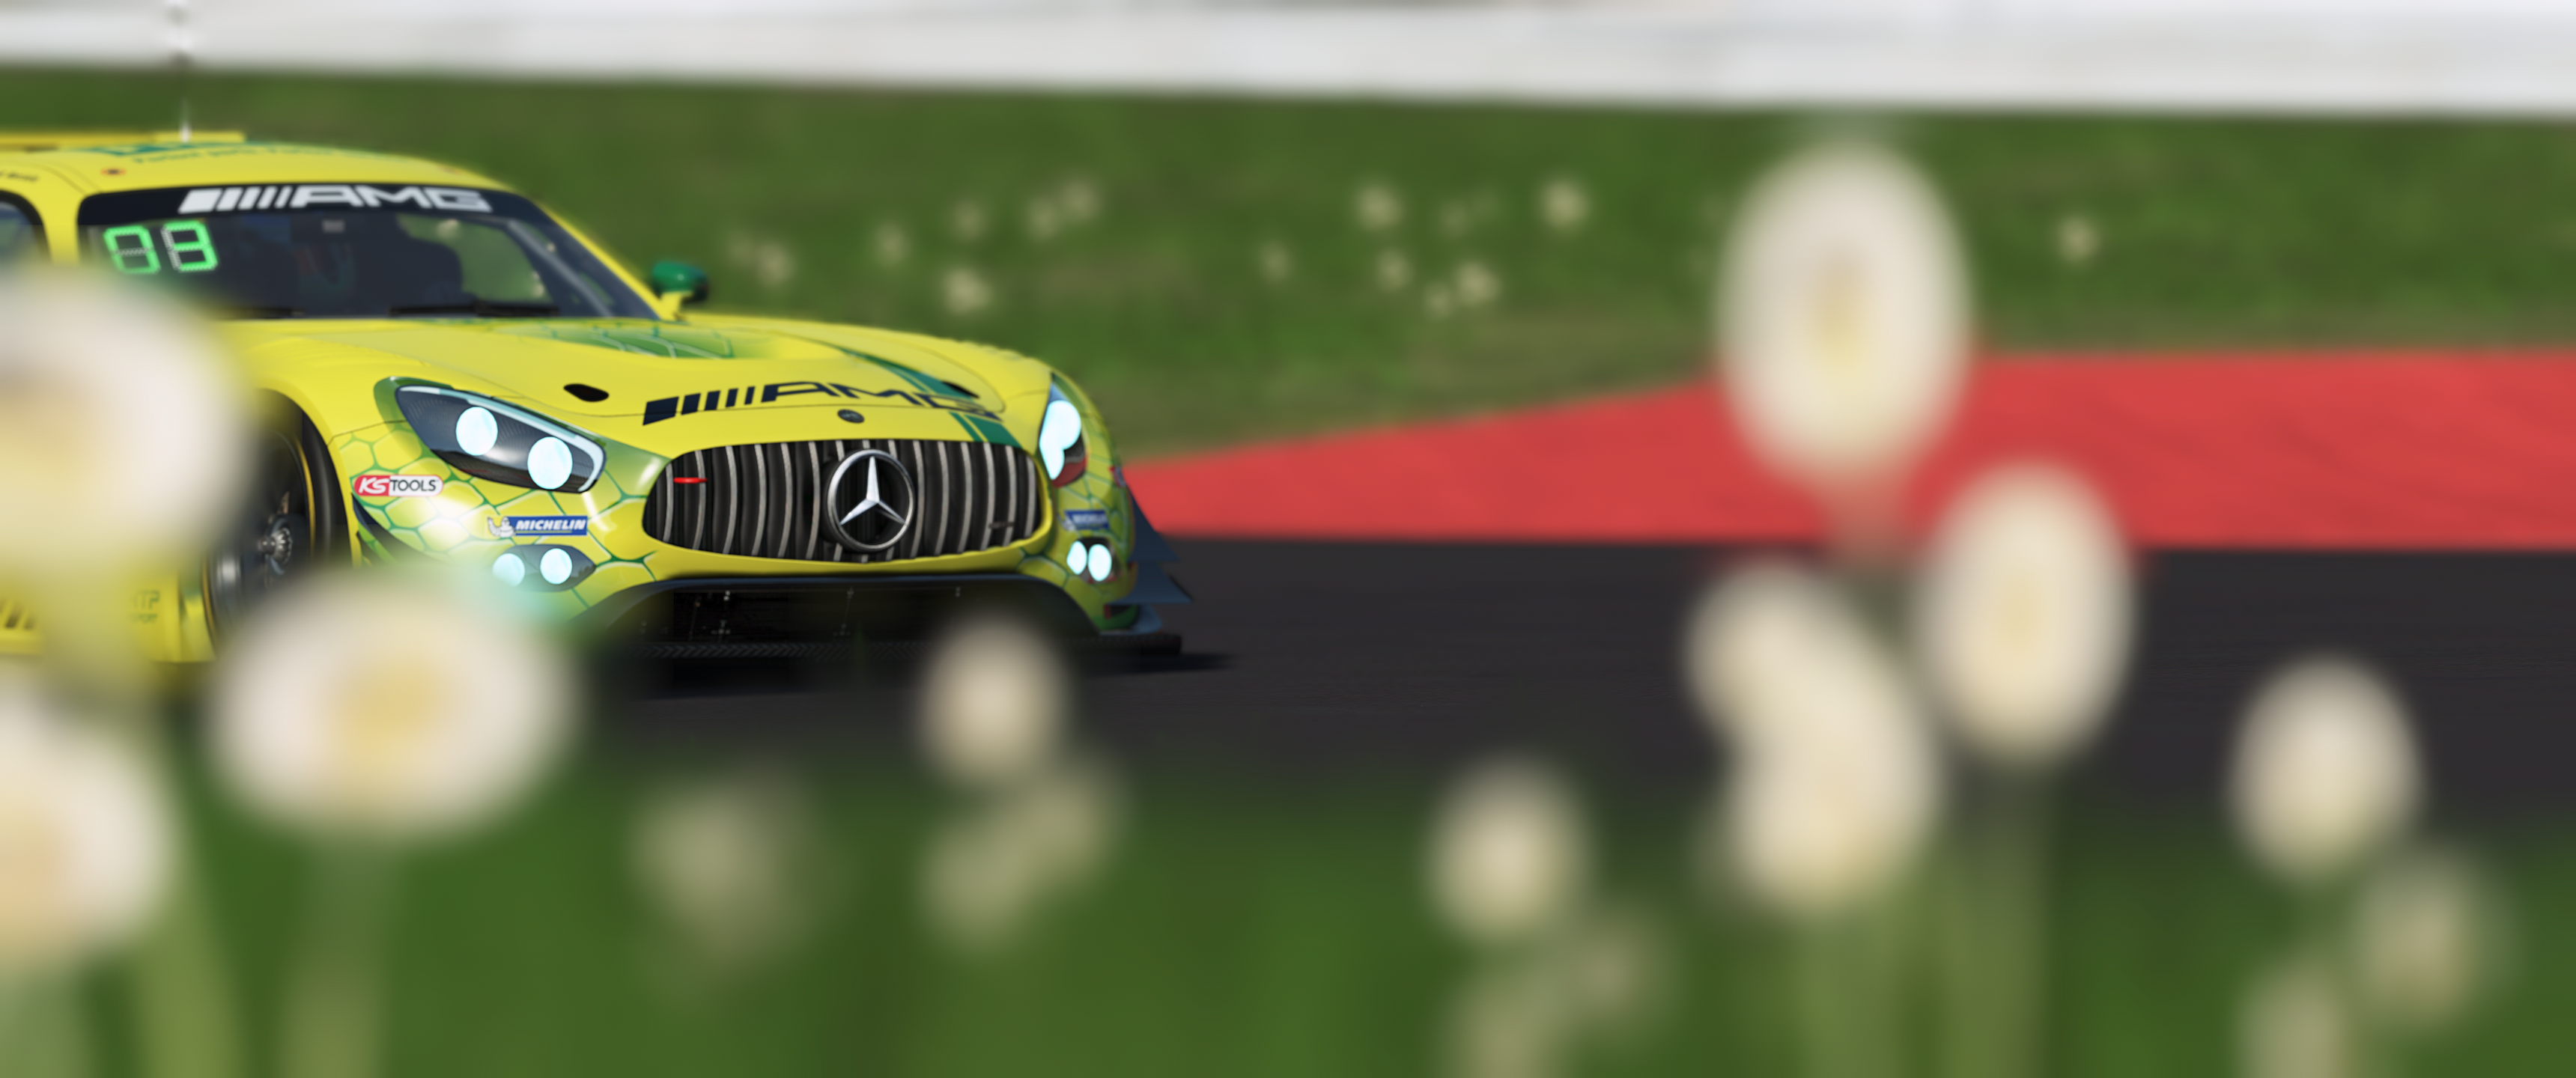 3rFactor2 2019-02-07 01-19-36-97.png